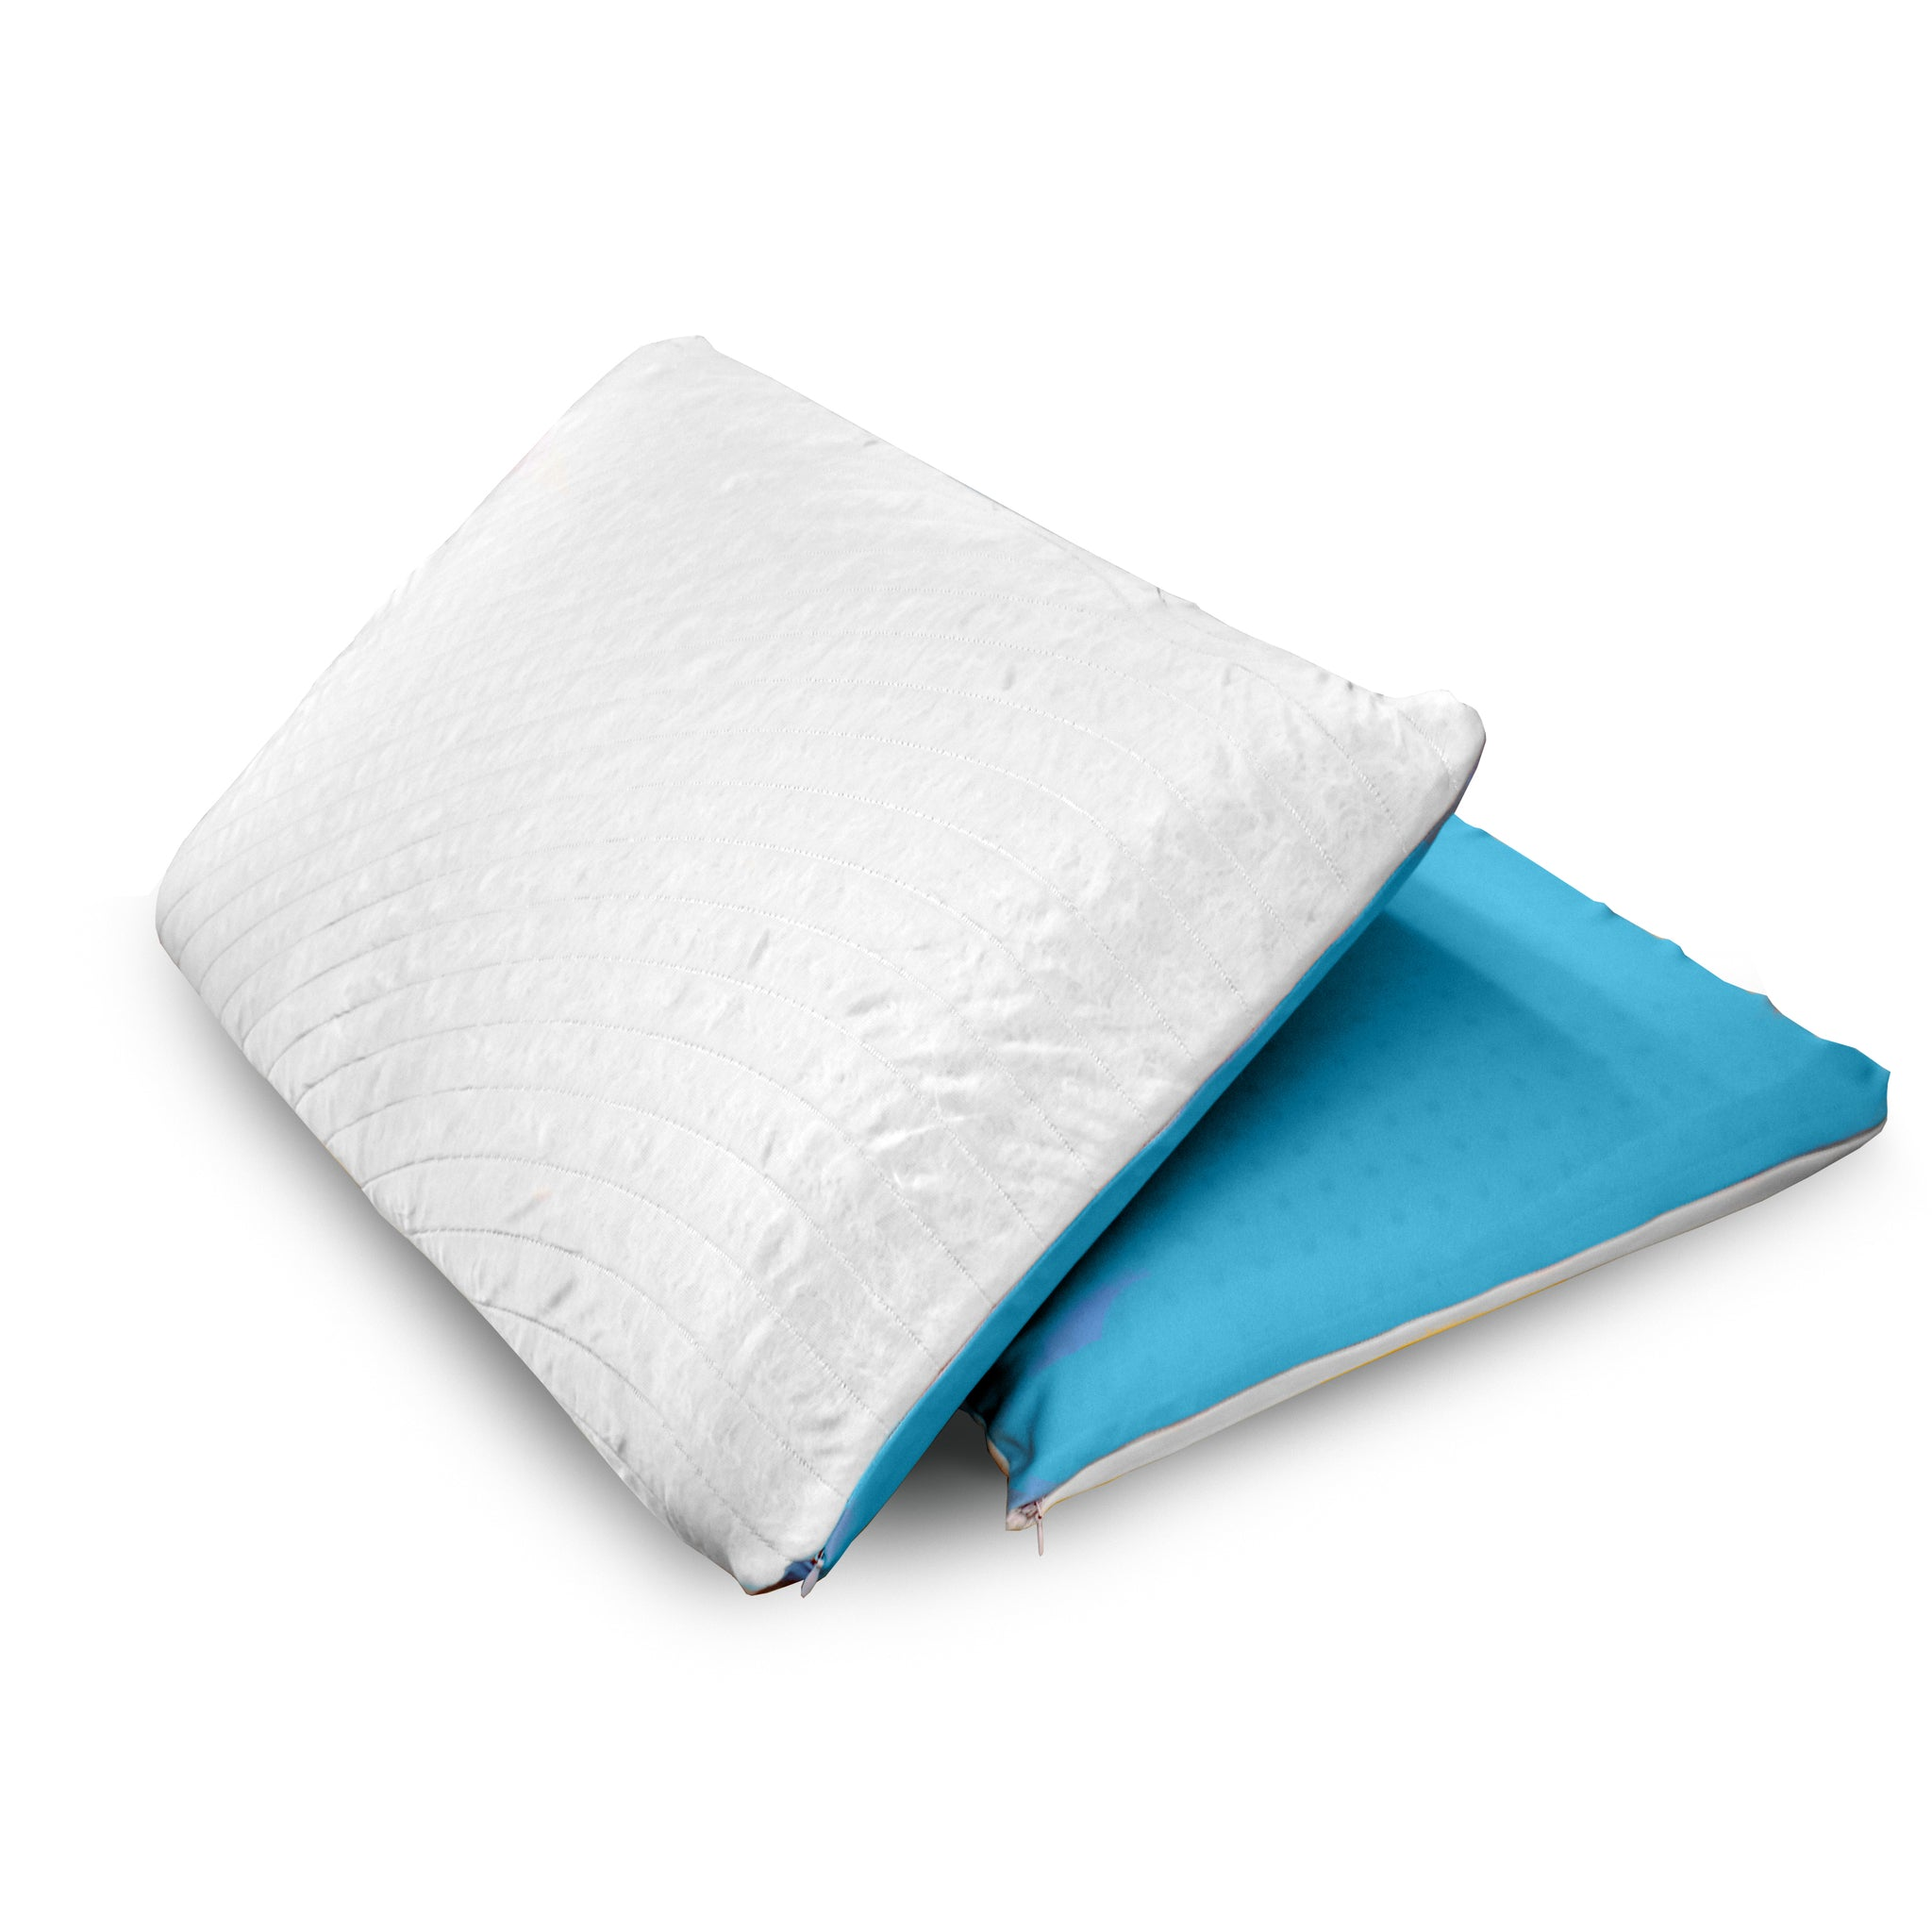 purecare pillow pillows protectors prod omniguard bedding pp product omni cooling img